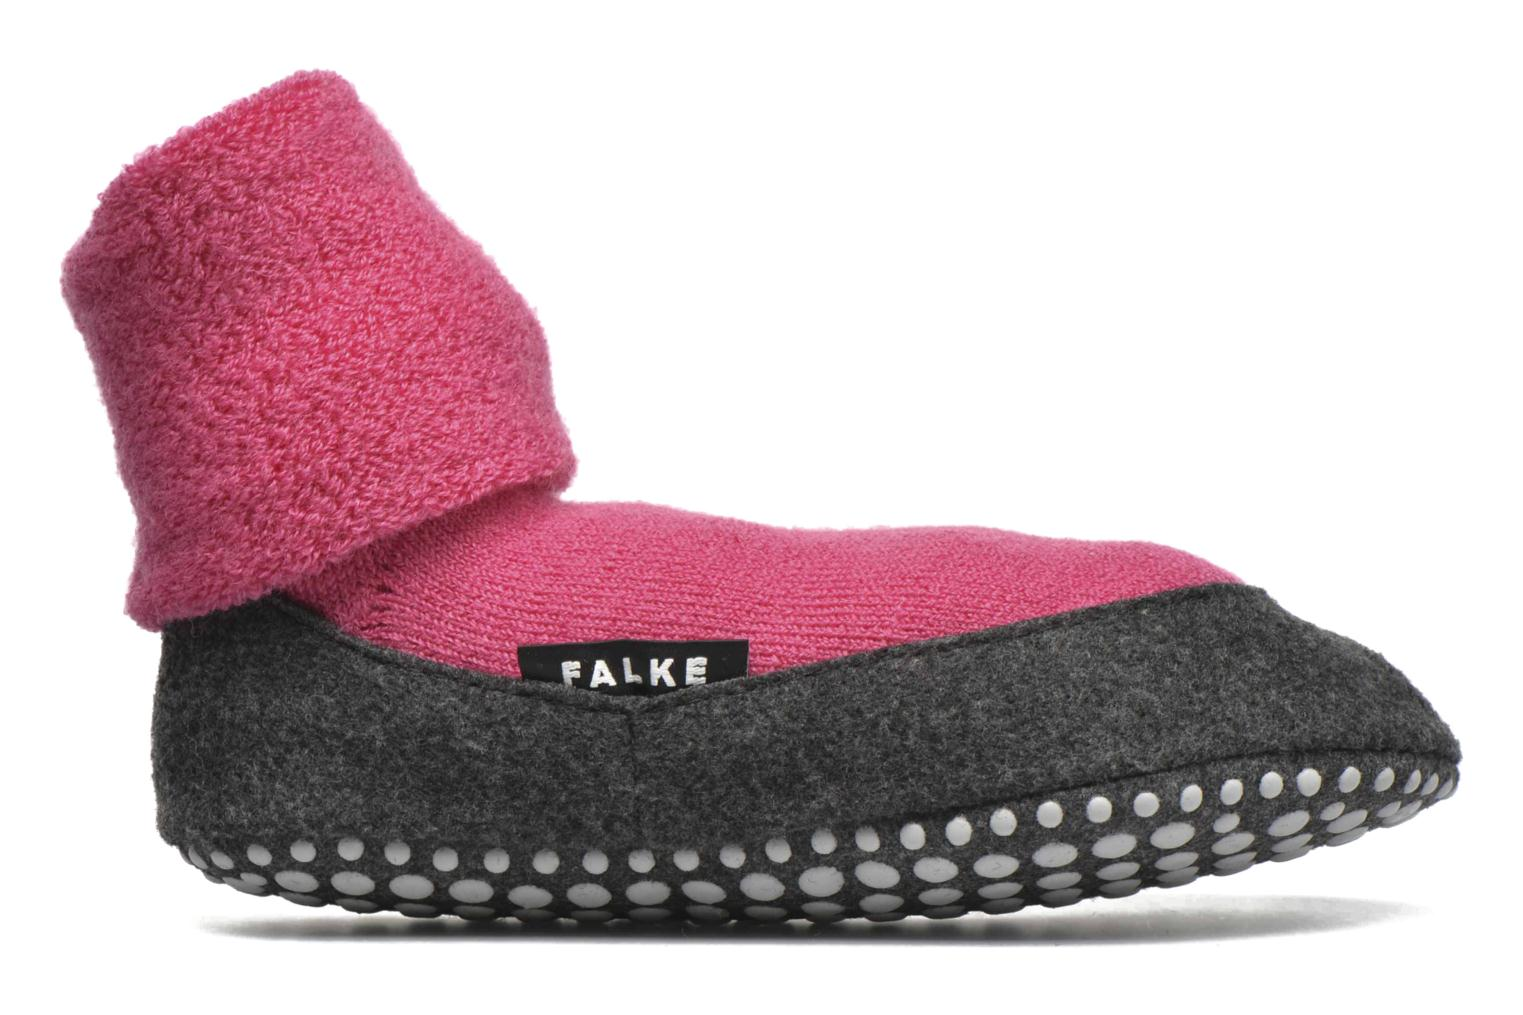 Calze e collant Falke Chaussons-chaussettes Cosyshoes Rosa immagine posteriore